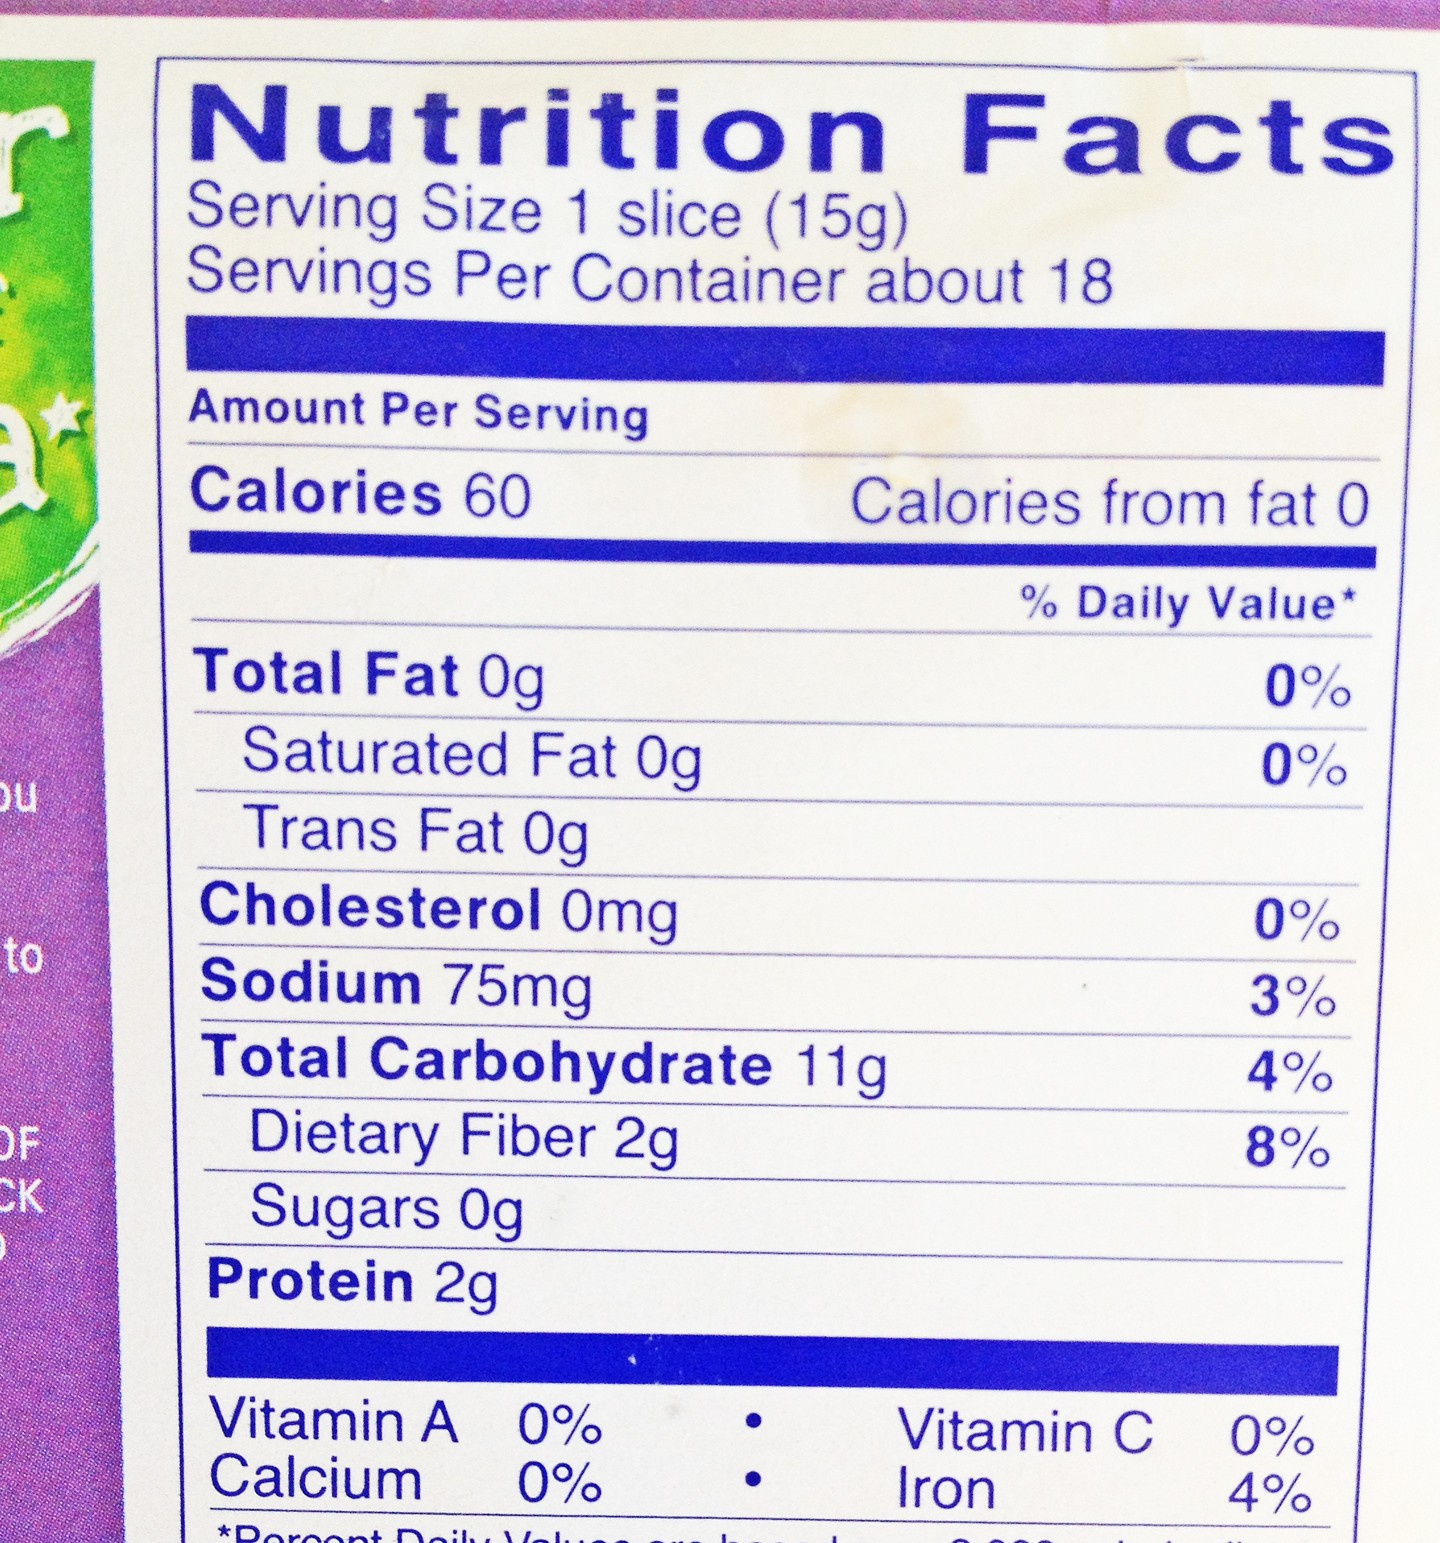 wasa cracker nutrition facts panel – food and health communications